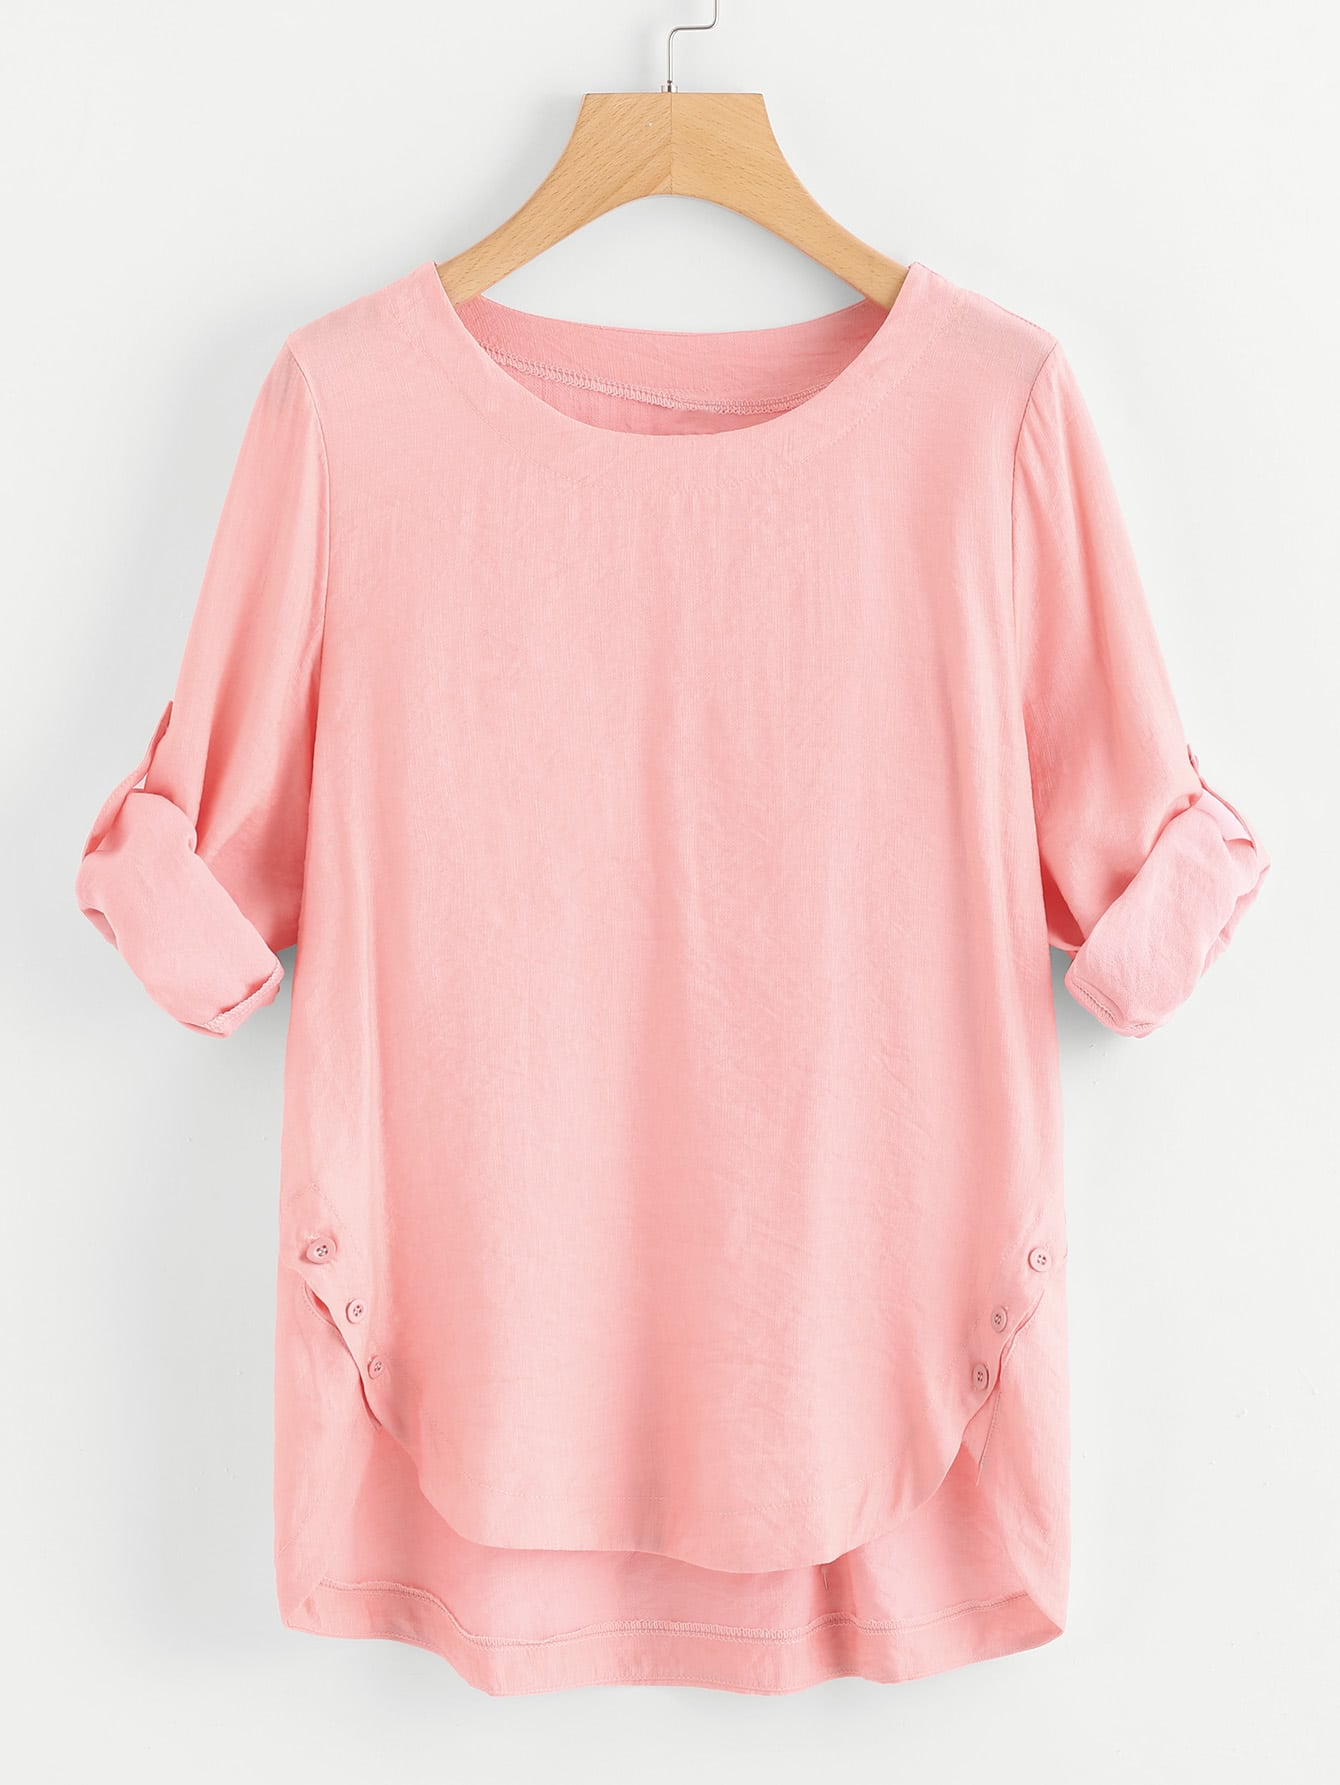 Roll Up Sleeve Asymmetrical Hem Tee roll up sleeve button front tee